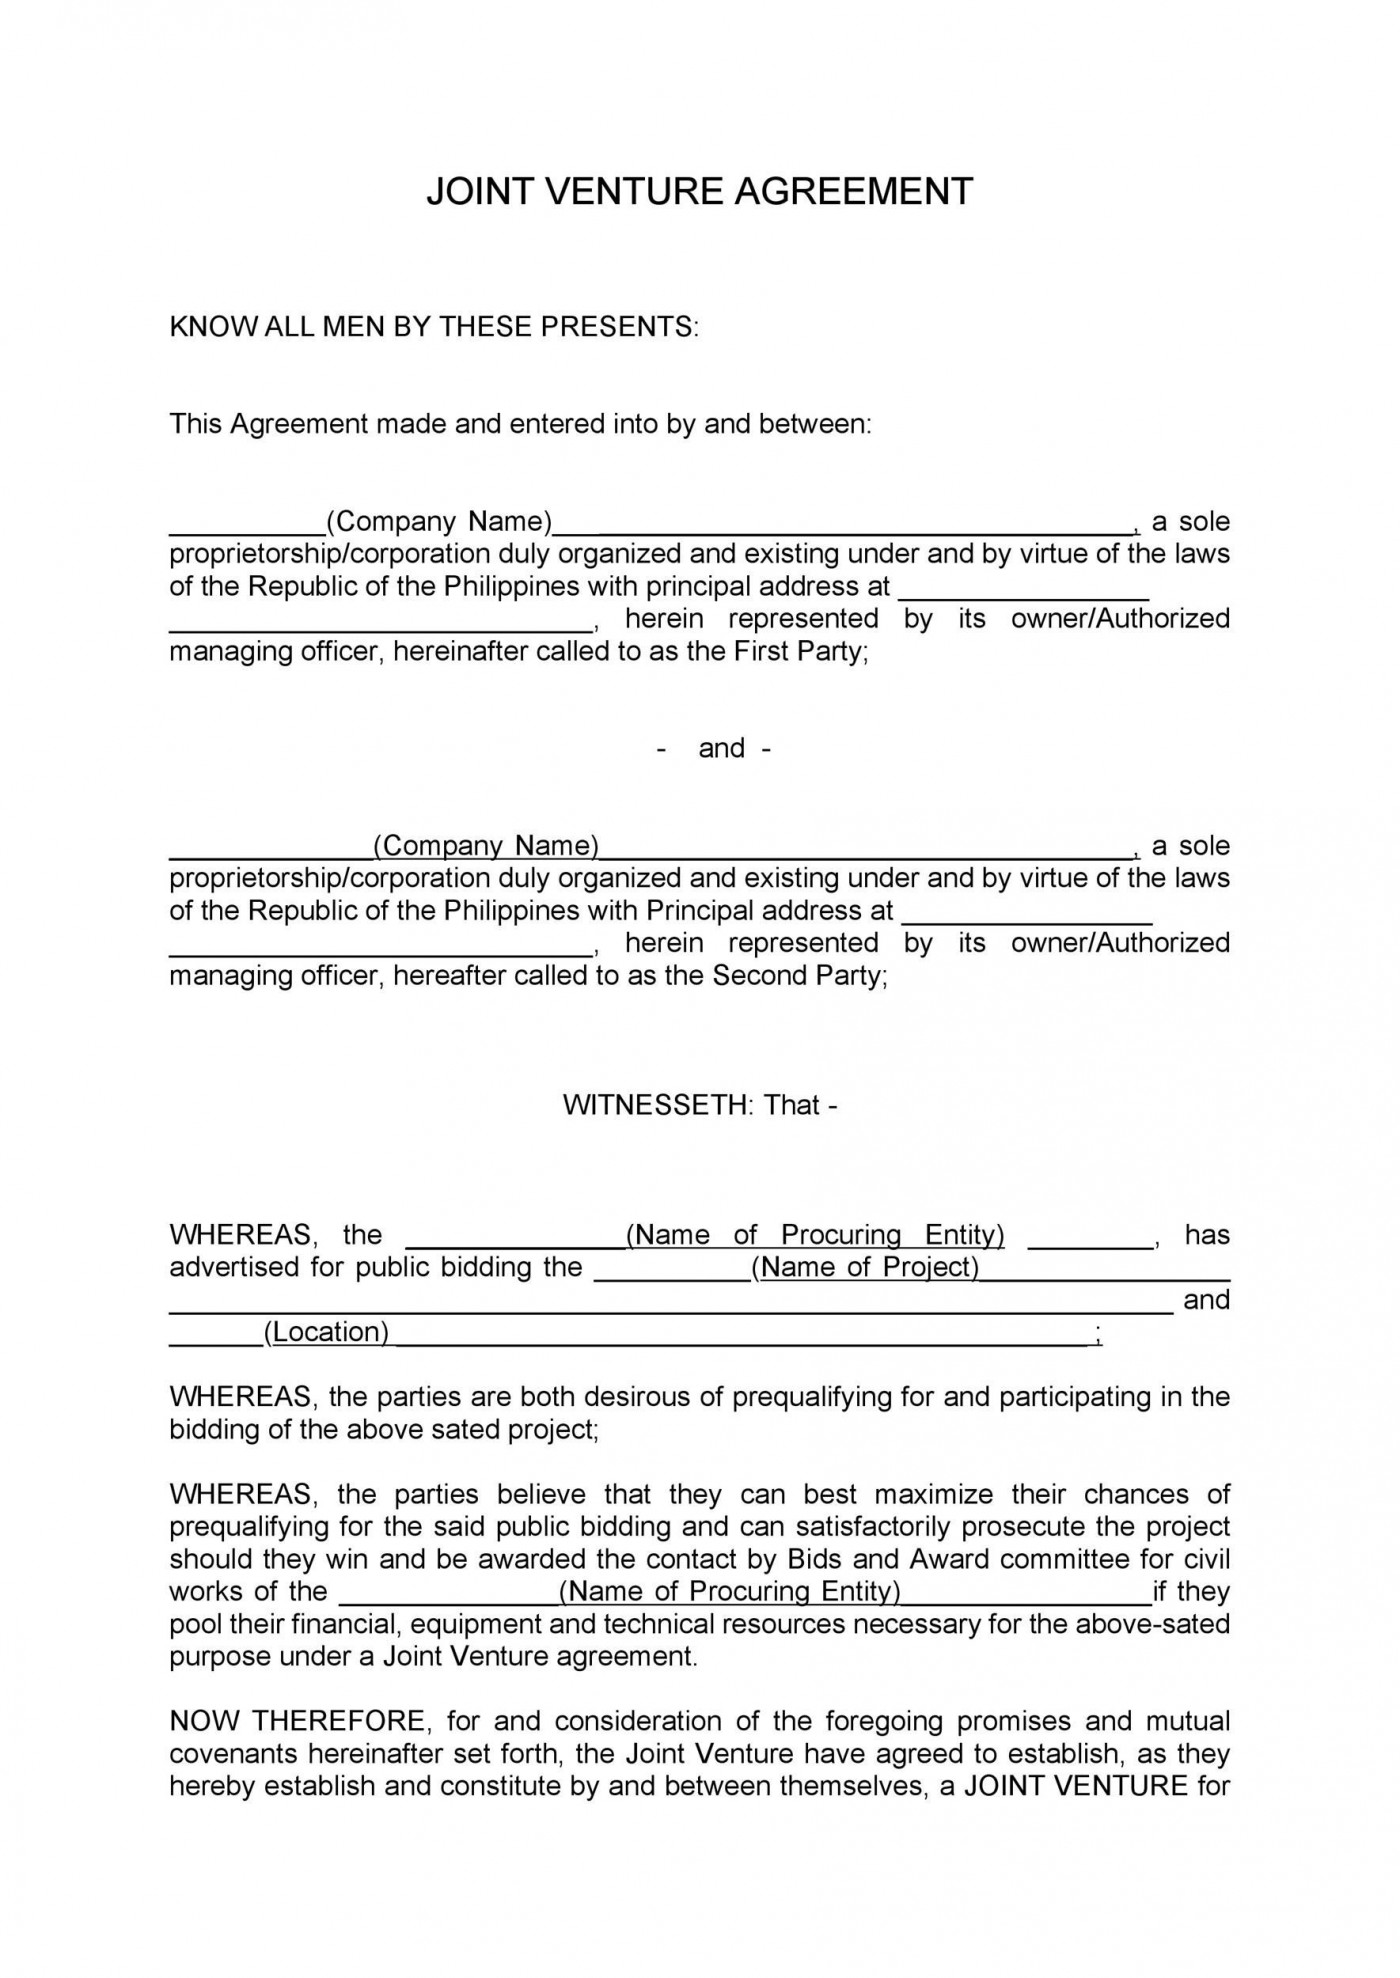 006 Frightening Property Management Contract Sample Philippine Concept 1400